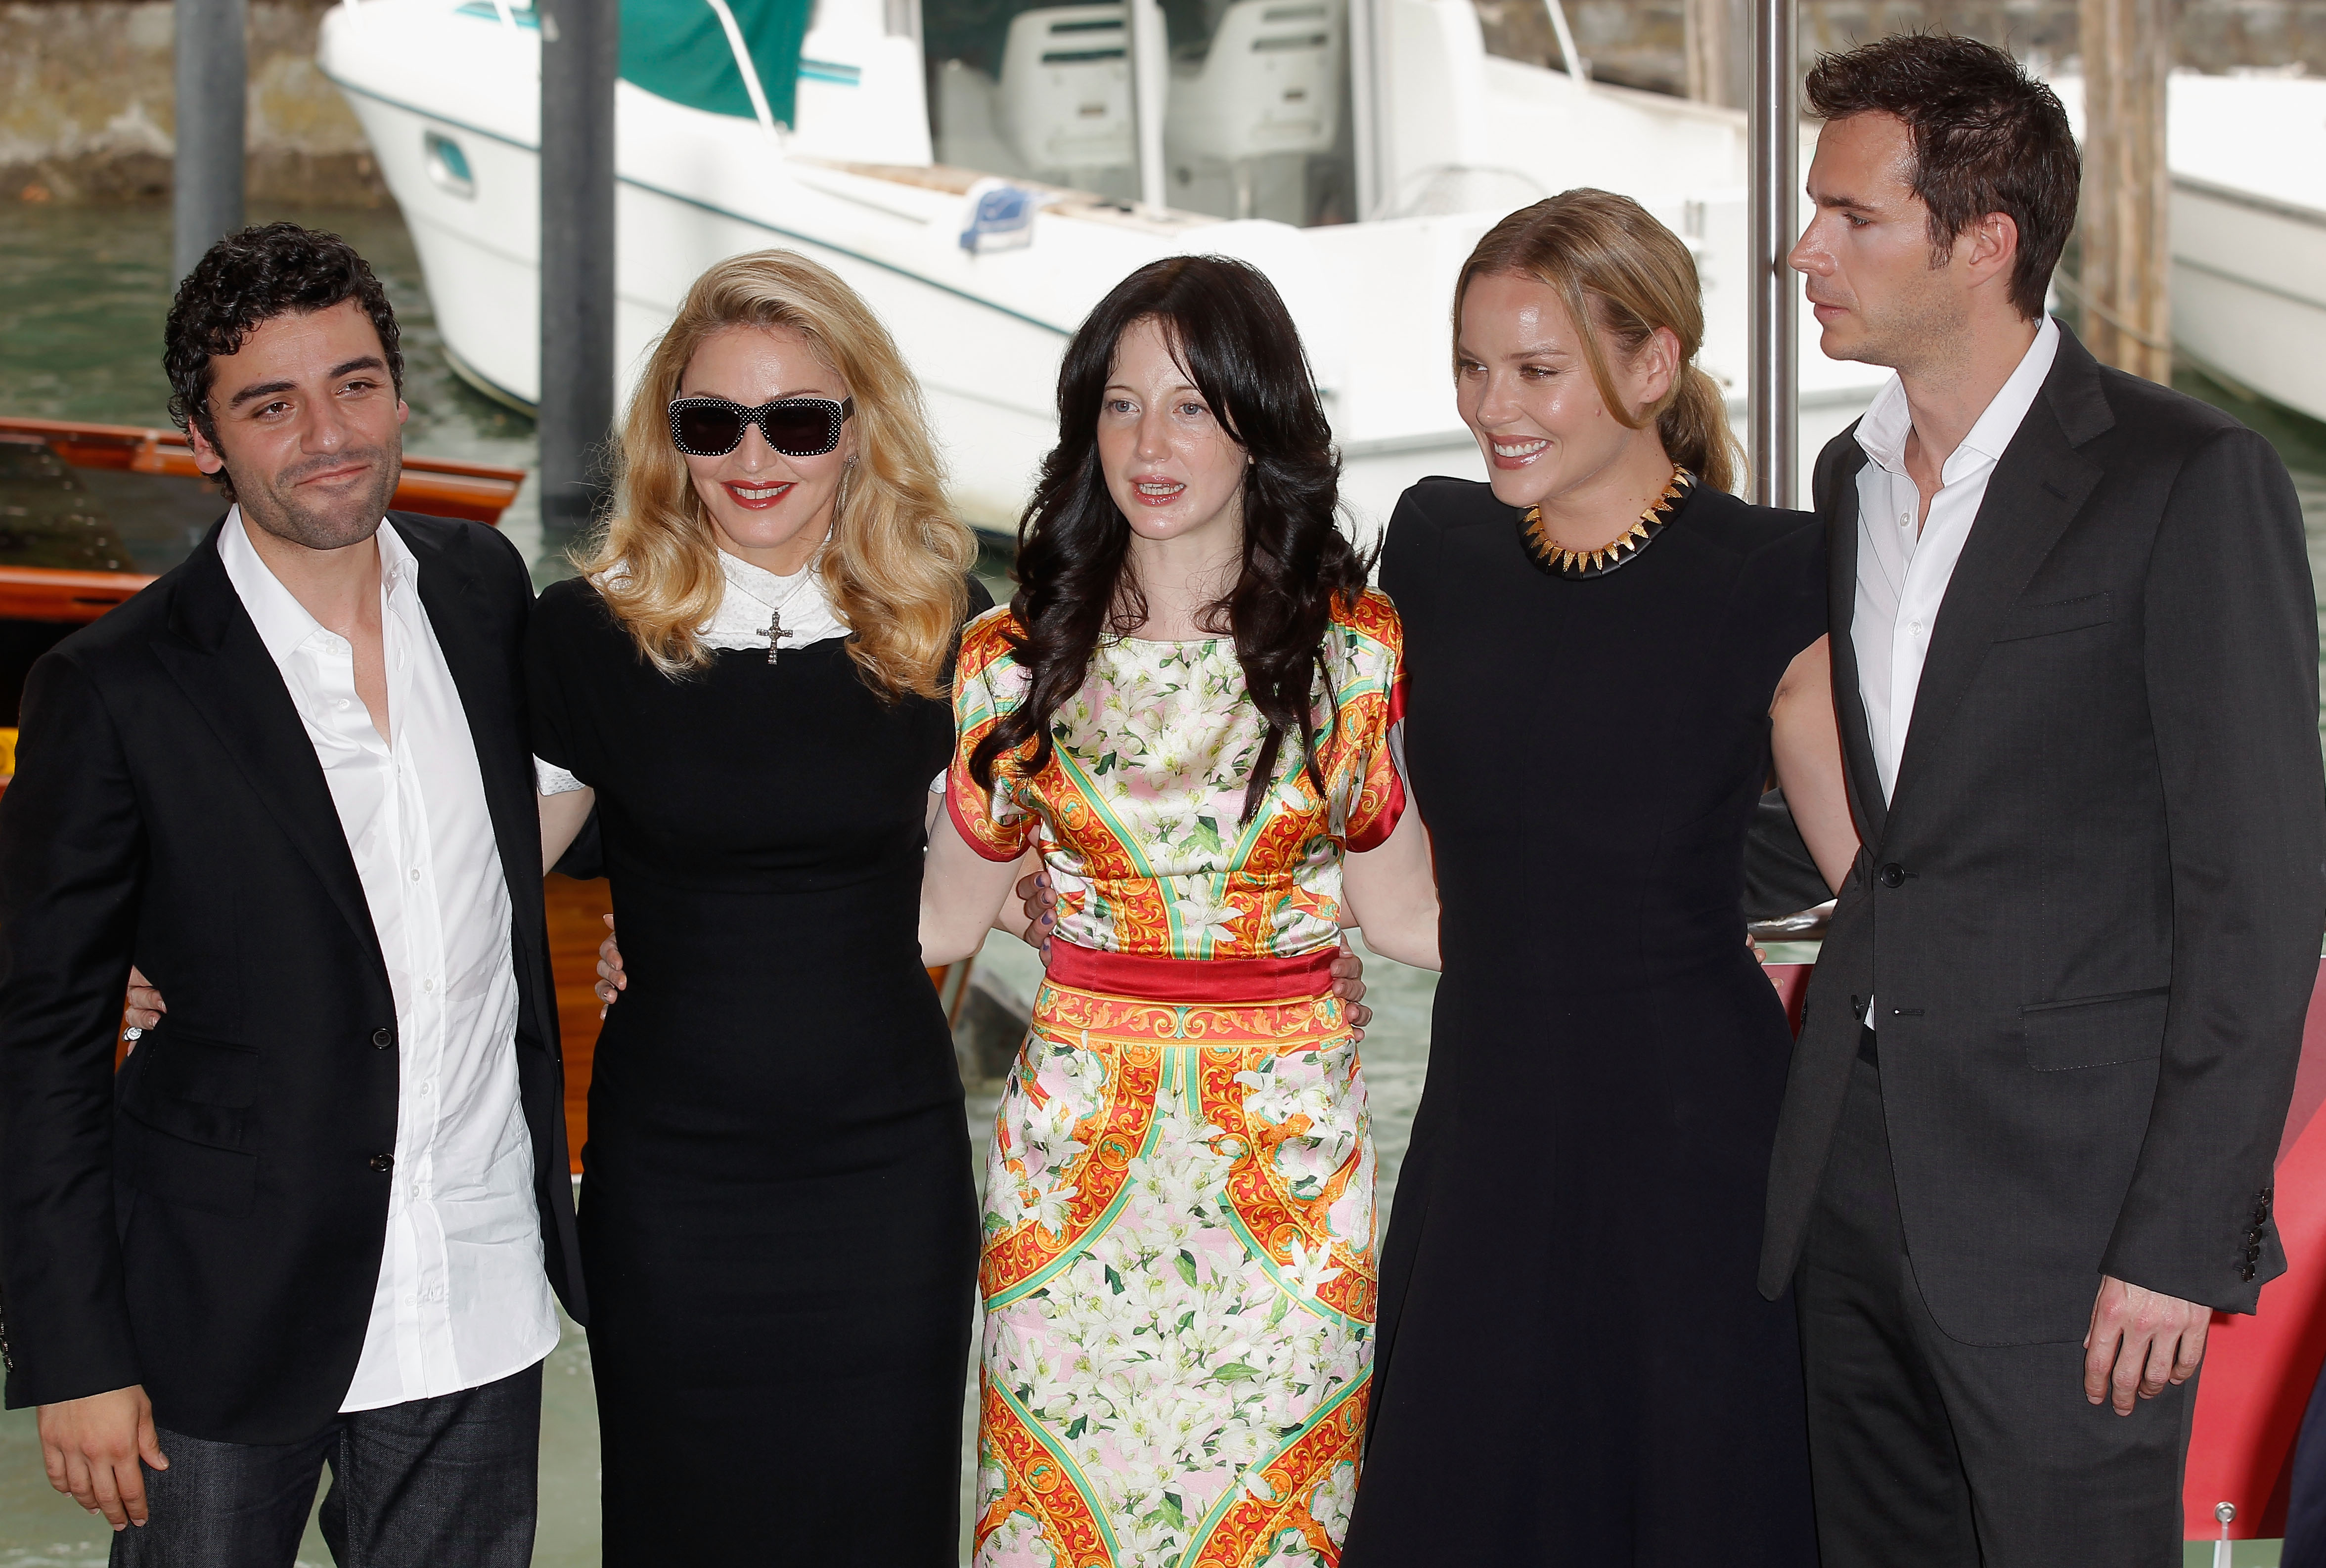 Madonna and her W.E. cast arrived at the Venice Film Festival.